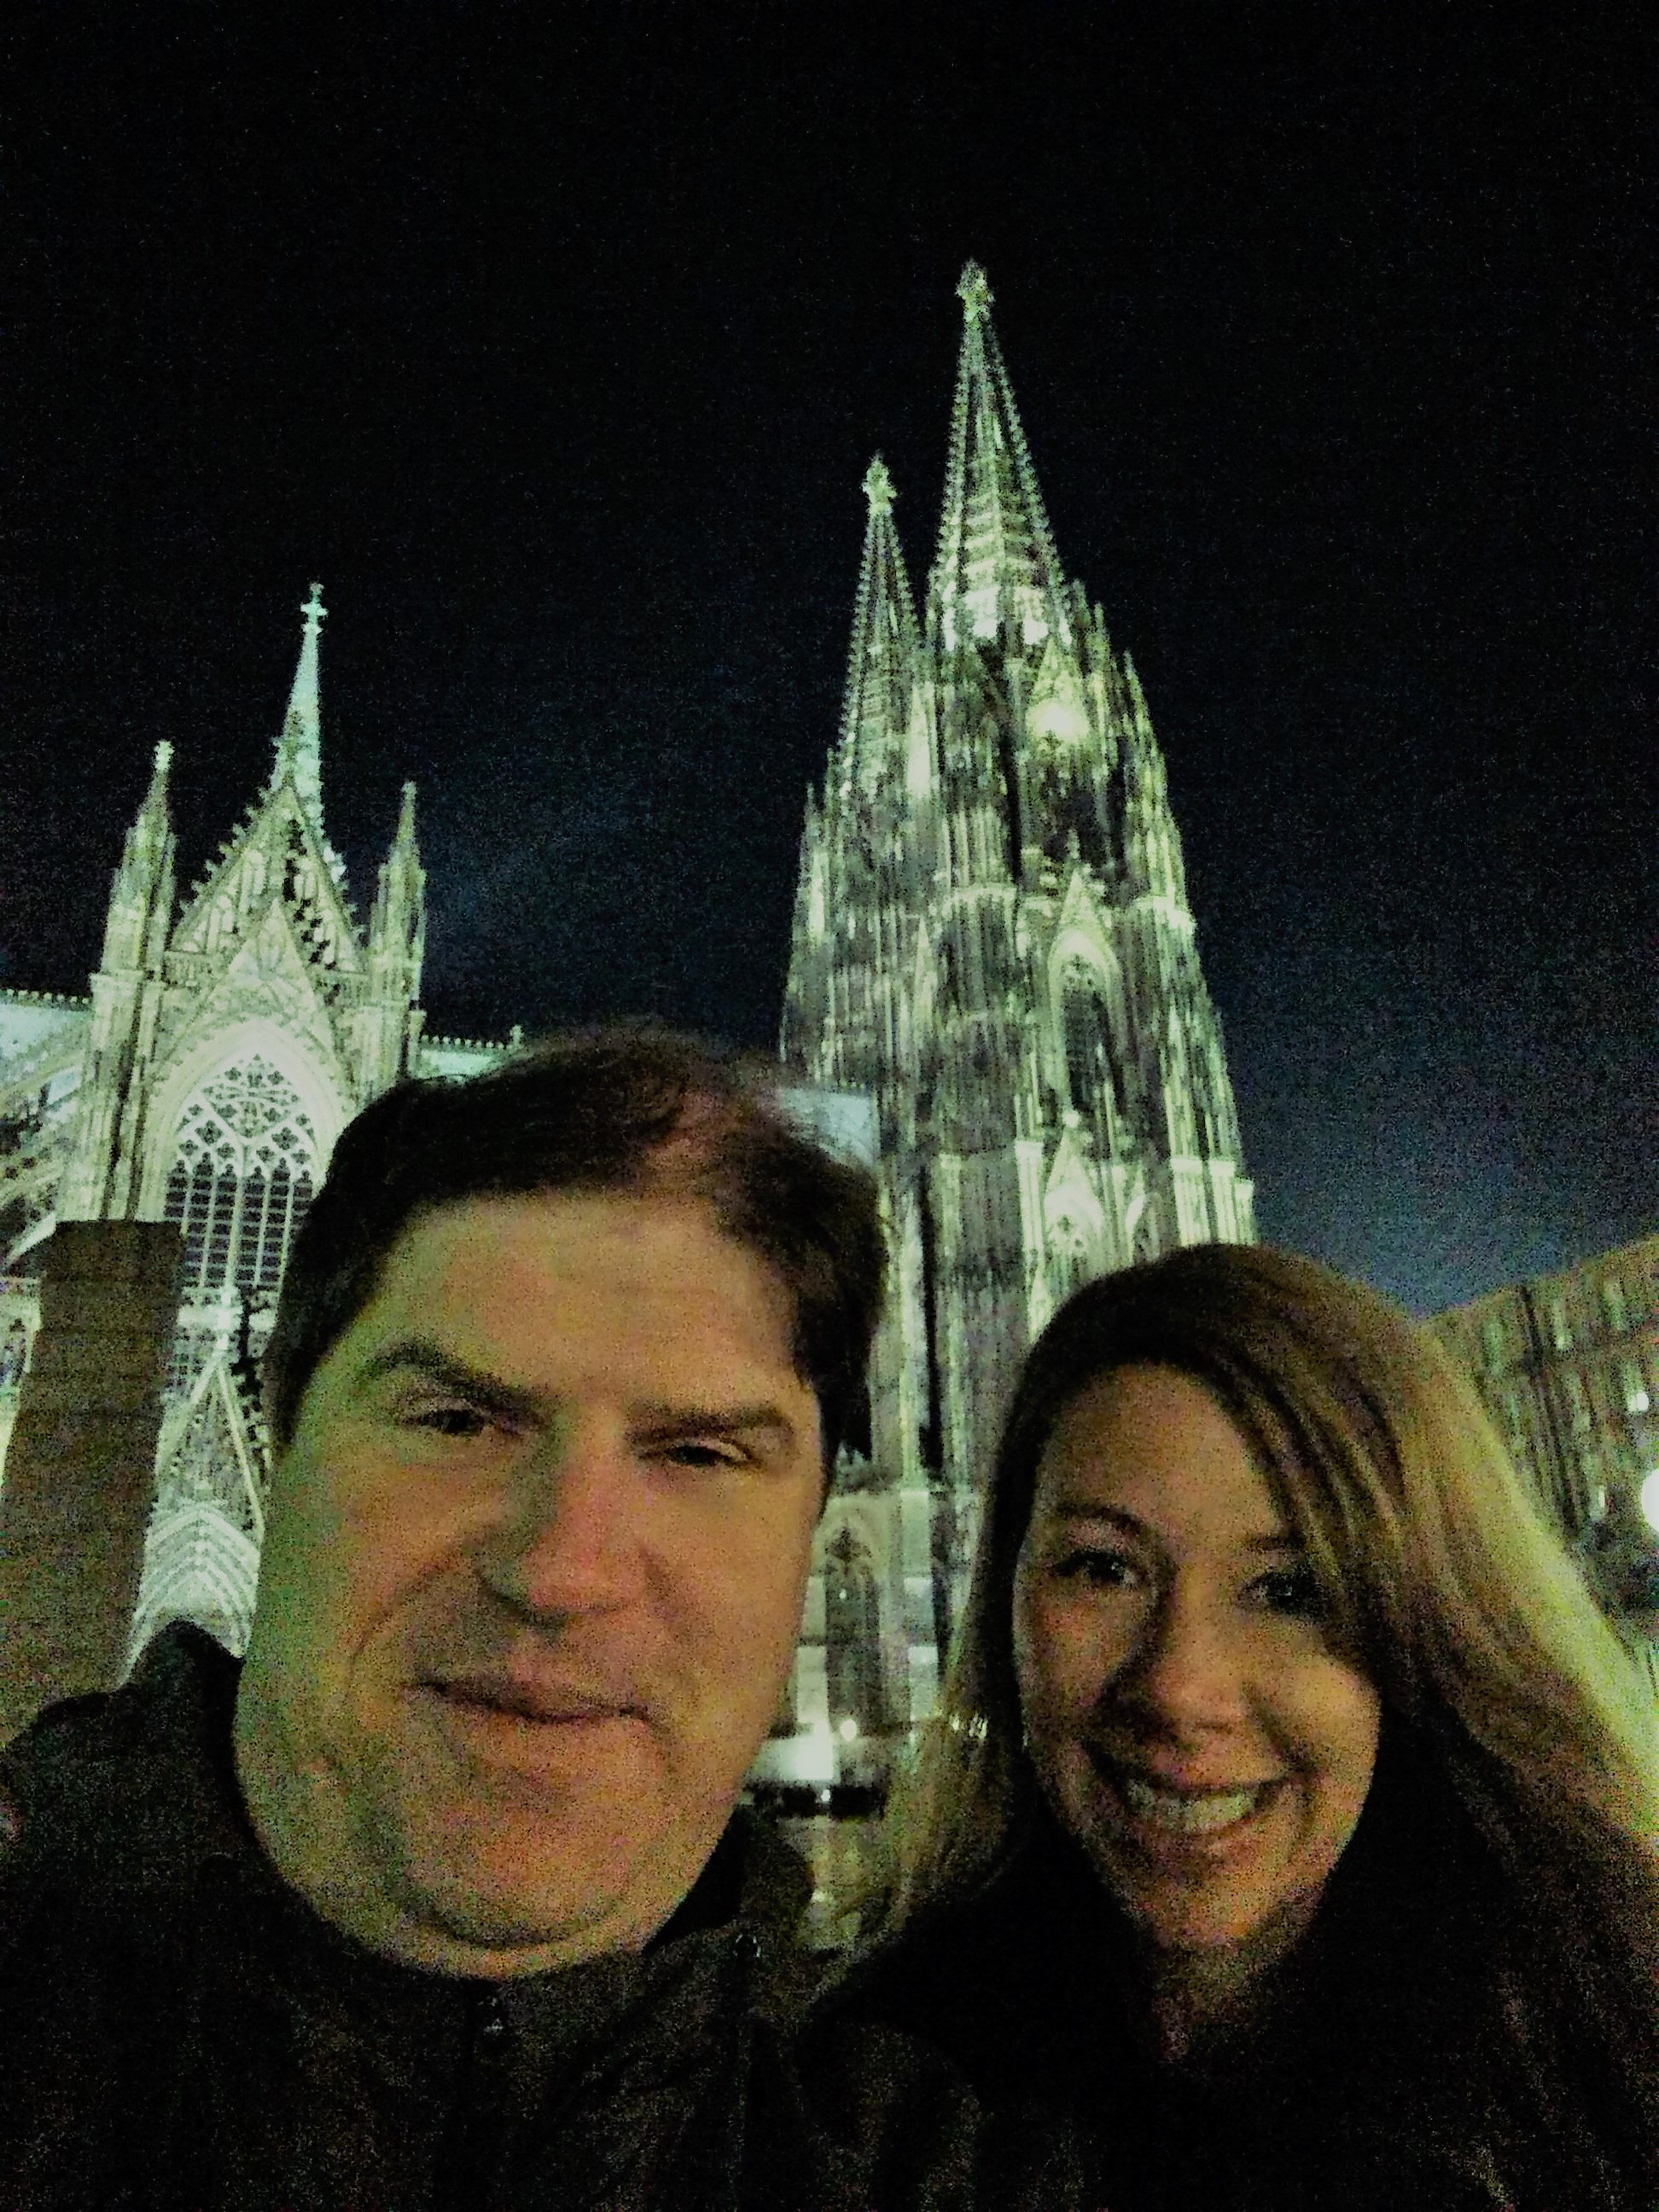 Cologne, Germany - 2/2018